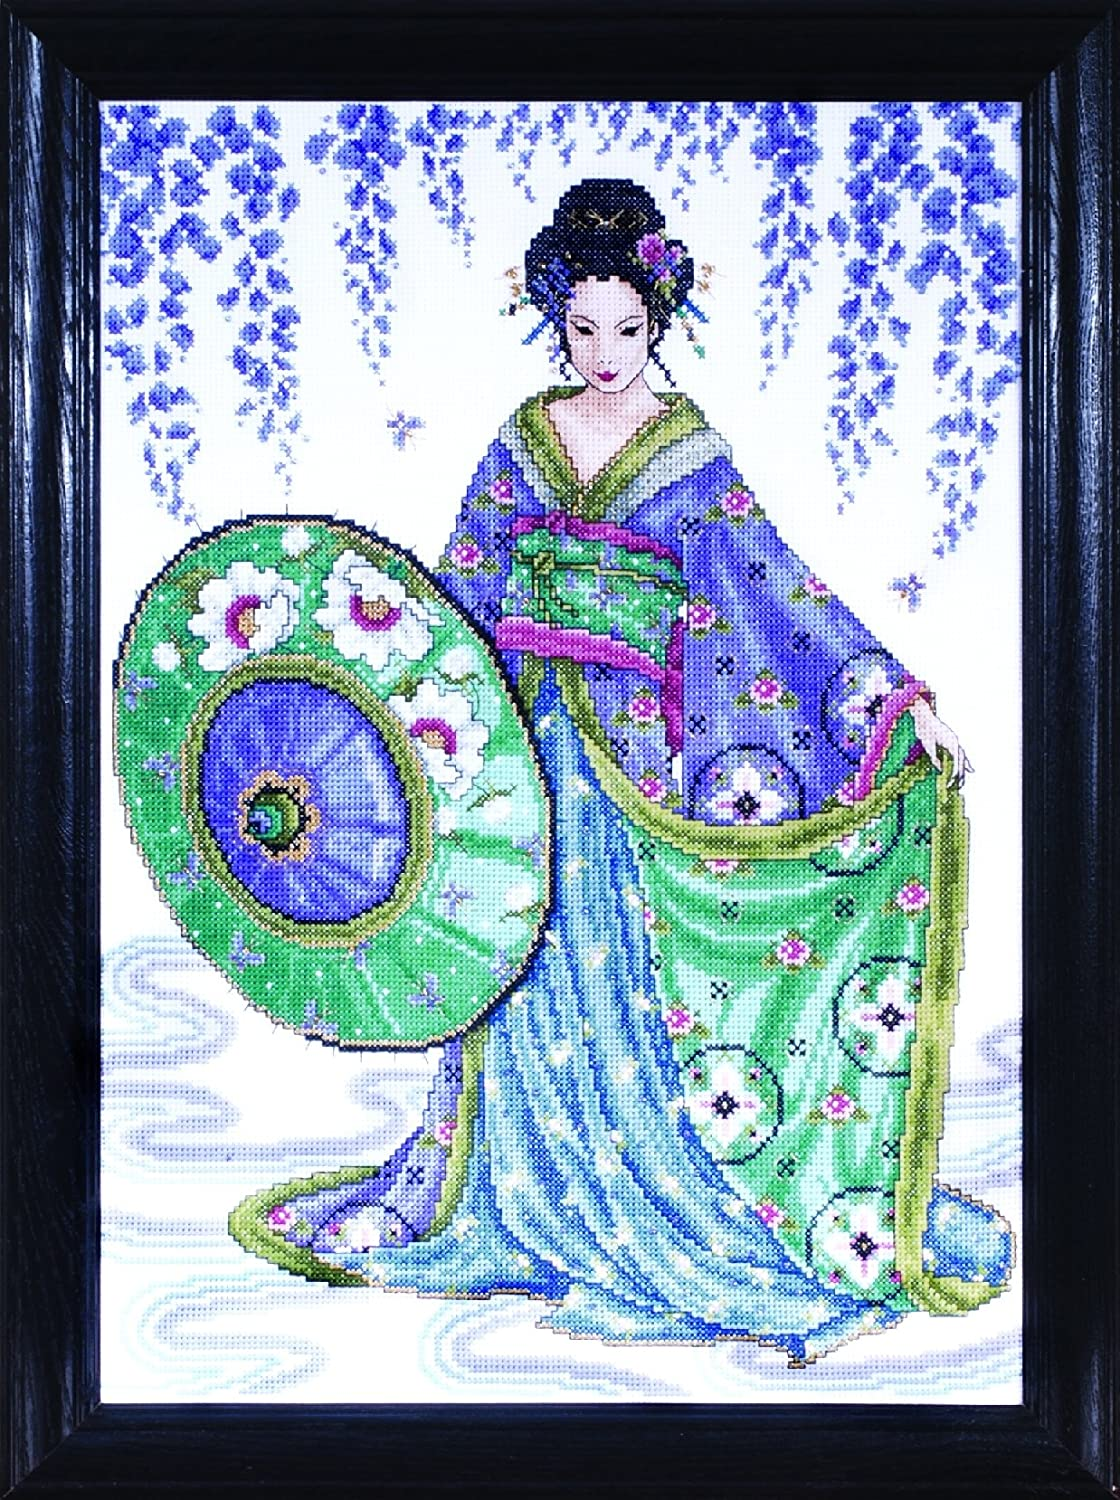 12 by 16 inches Geisha Design Works Crafts Counted Cross Stitch